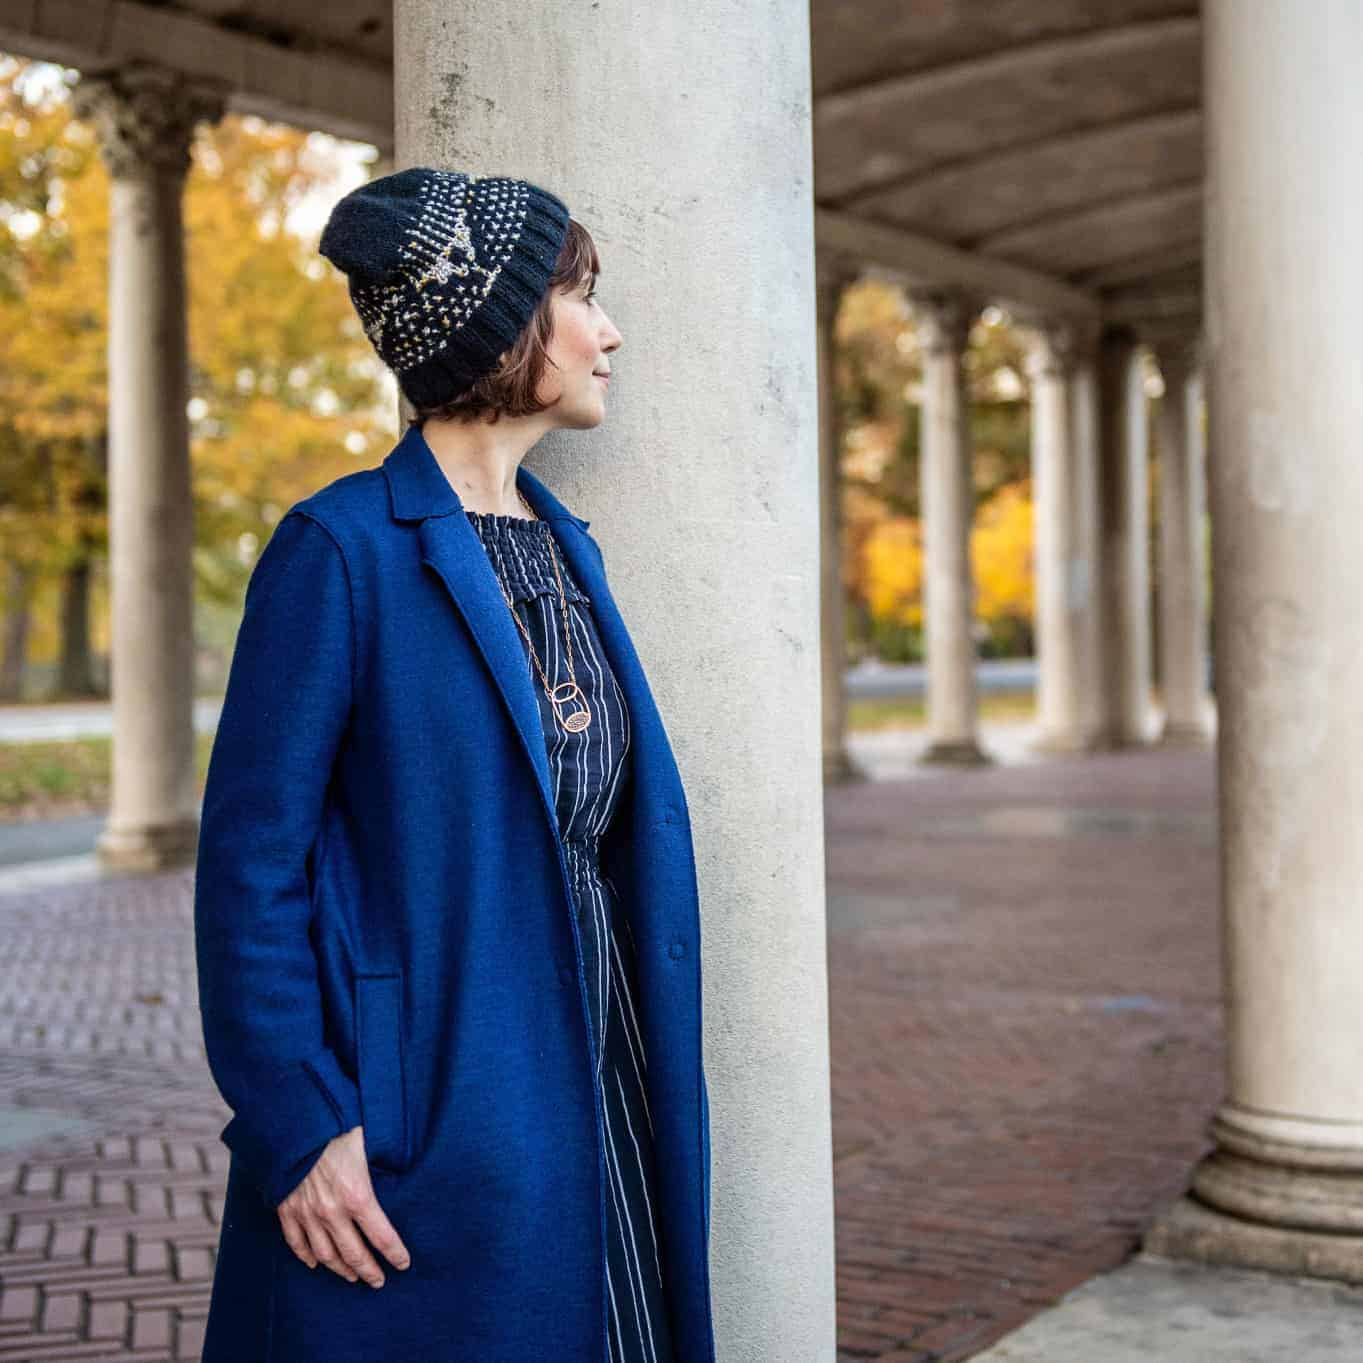 A woman models a blue and gray beanie next to columns.